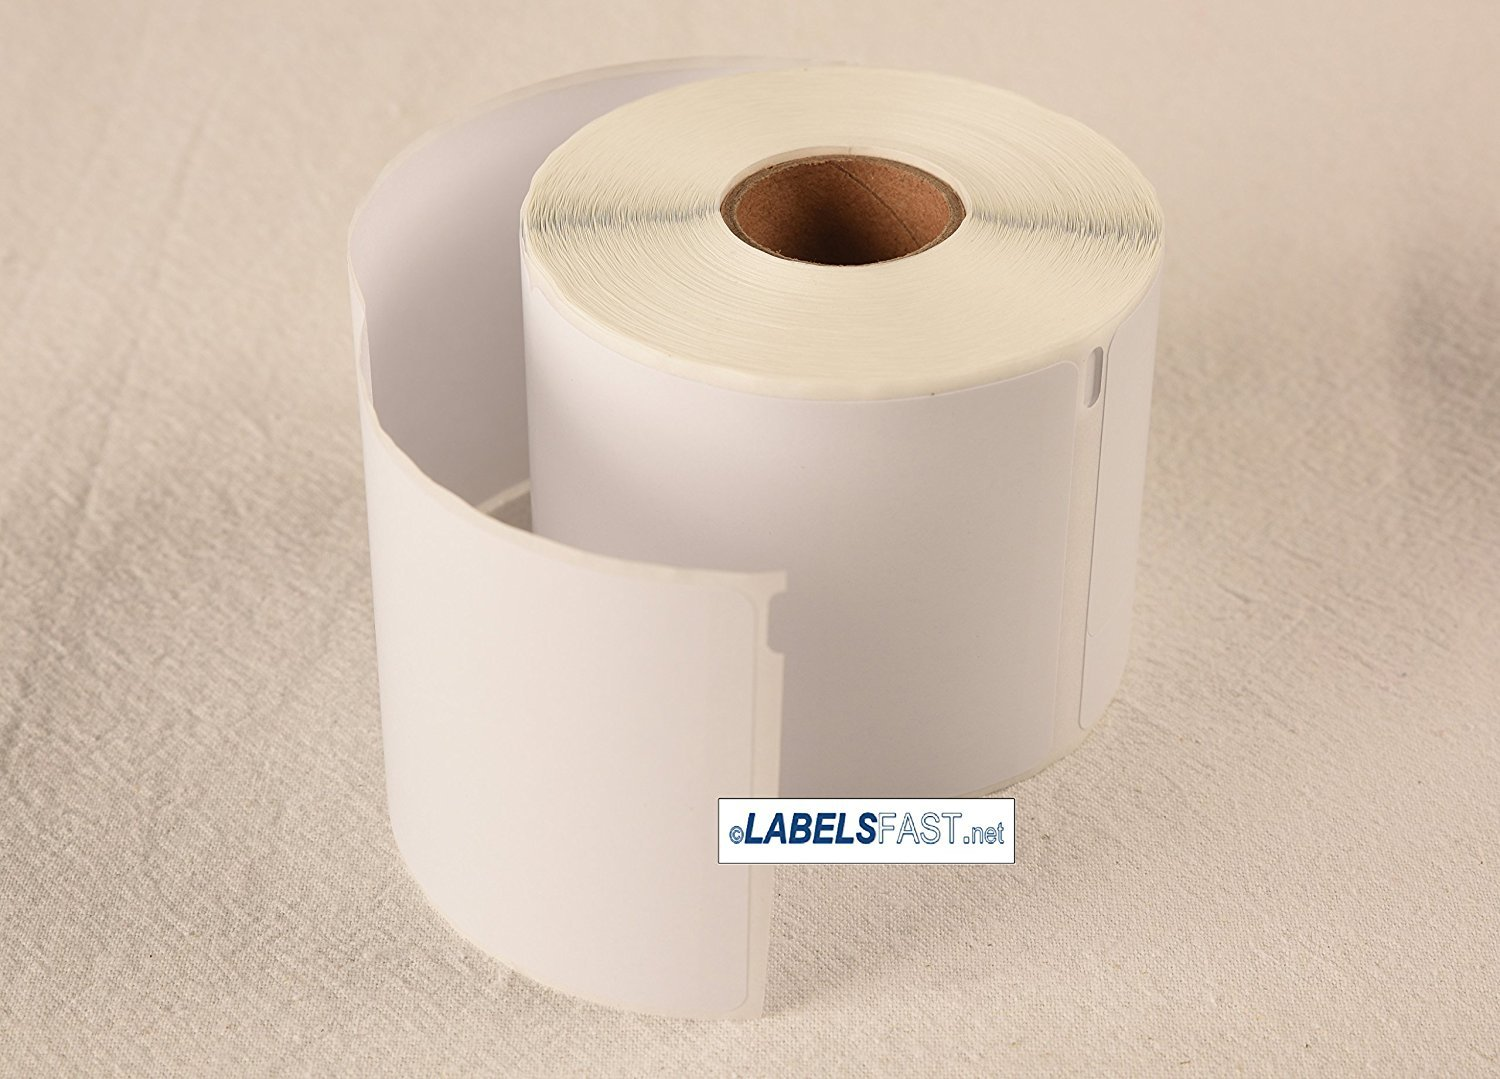 4 Rolls of Dymo Compatible 100 labels eBay Labelree Folder Tag White Removable 30387 Labels Internet Postage Stamp